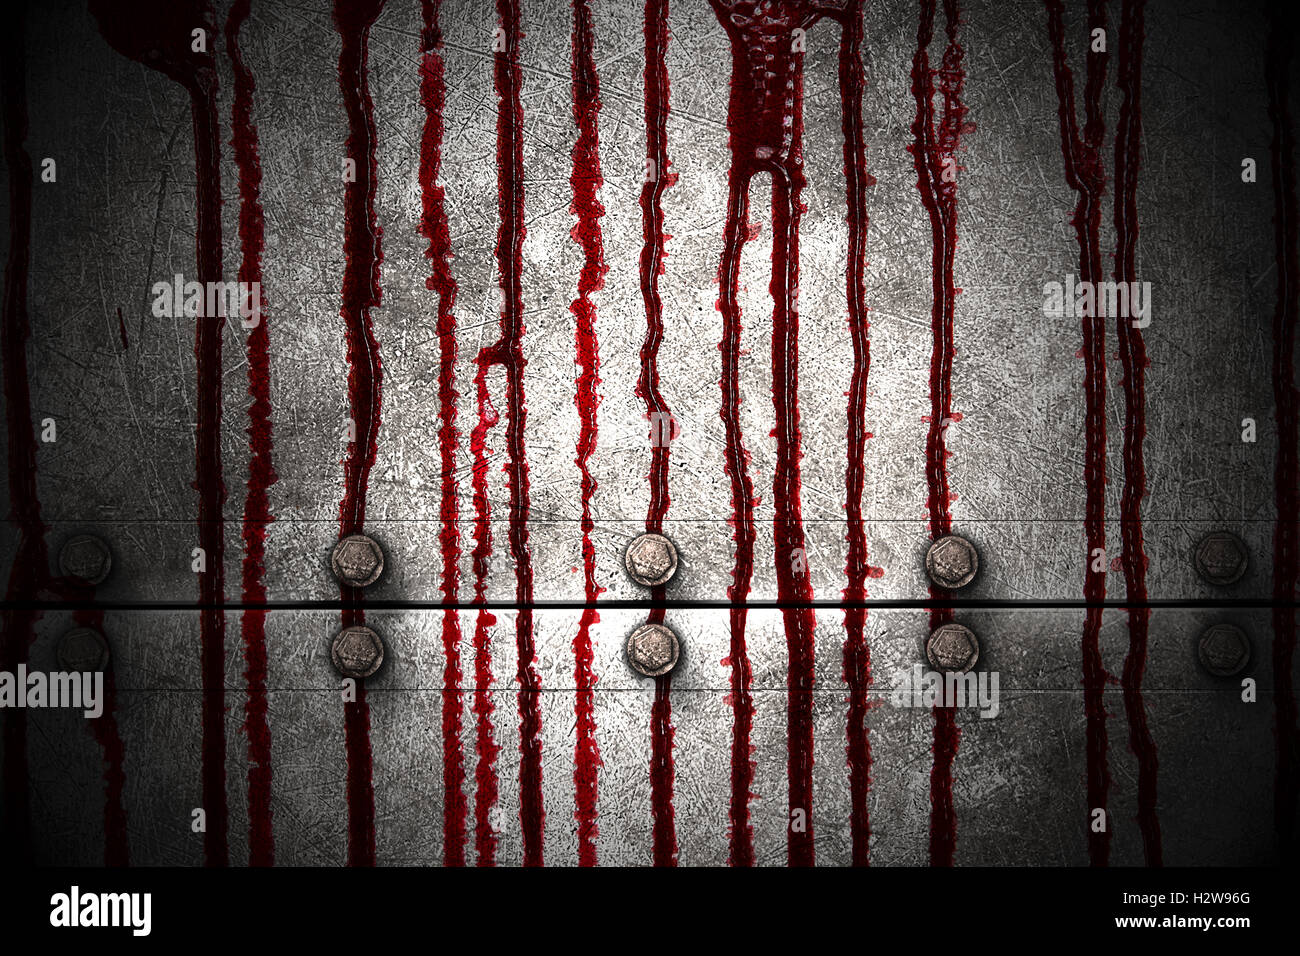 Set 8 Bloody Metal Wall In The Dark For Horror Content And Stock Photo Alamy The rust has different colors including yellow, orange, red and brown. https www alamy com stock photo set 8 bloody metal wall in the dark for horror content and halloween 122257928 html